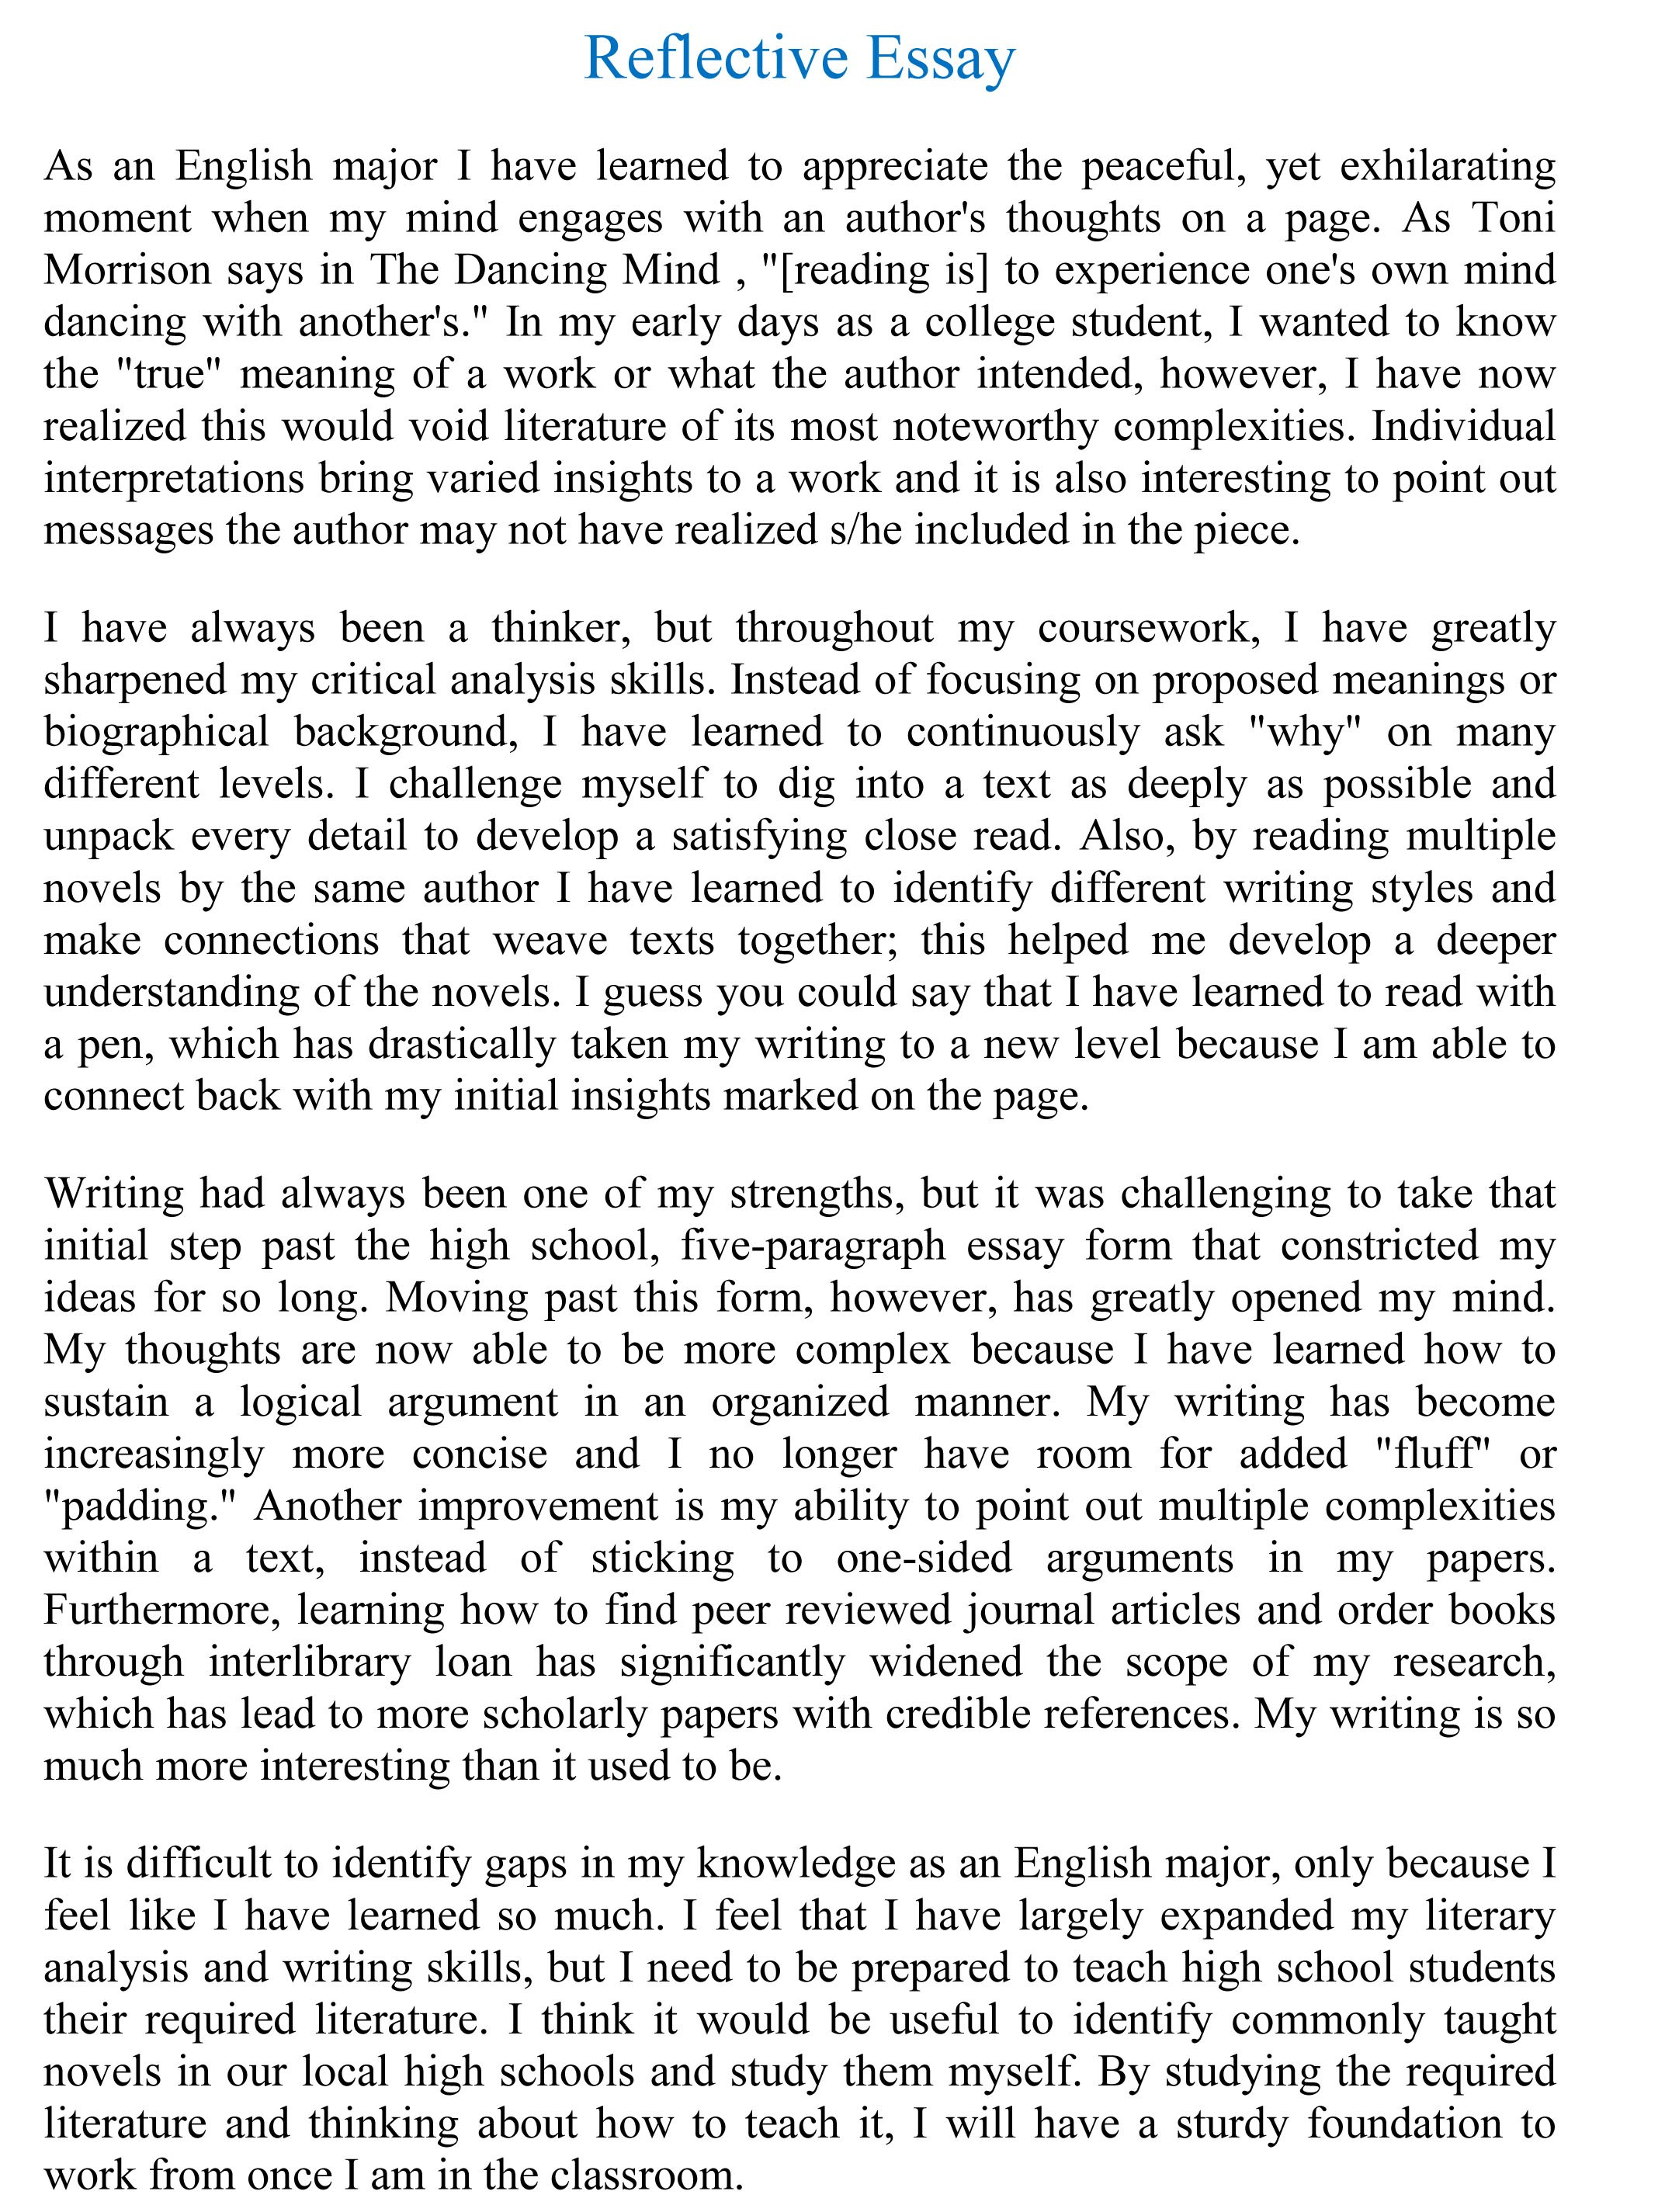 004 Reflective Essay Sample How To Start Introduction Surprising A Do You An Write For Full